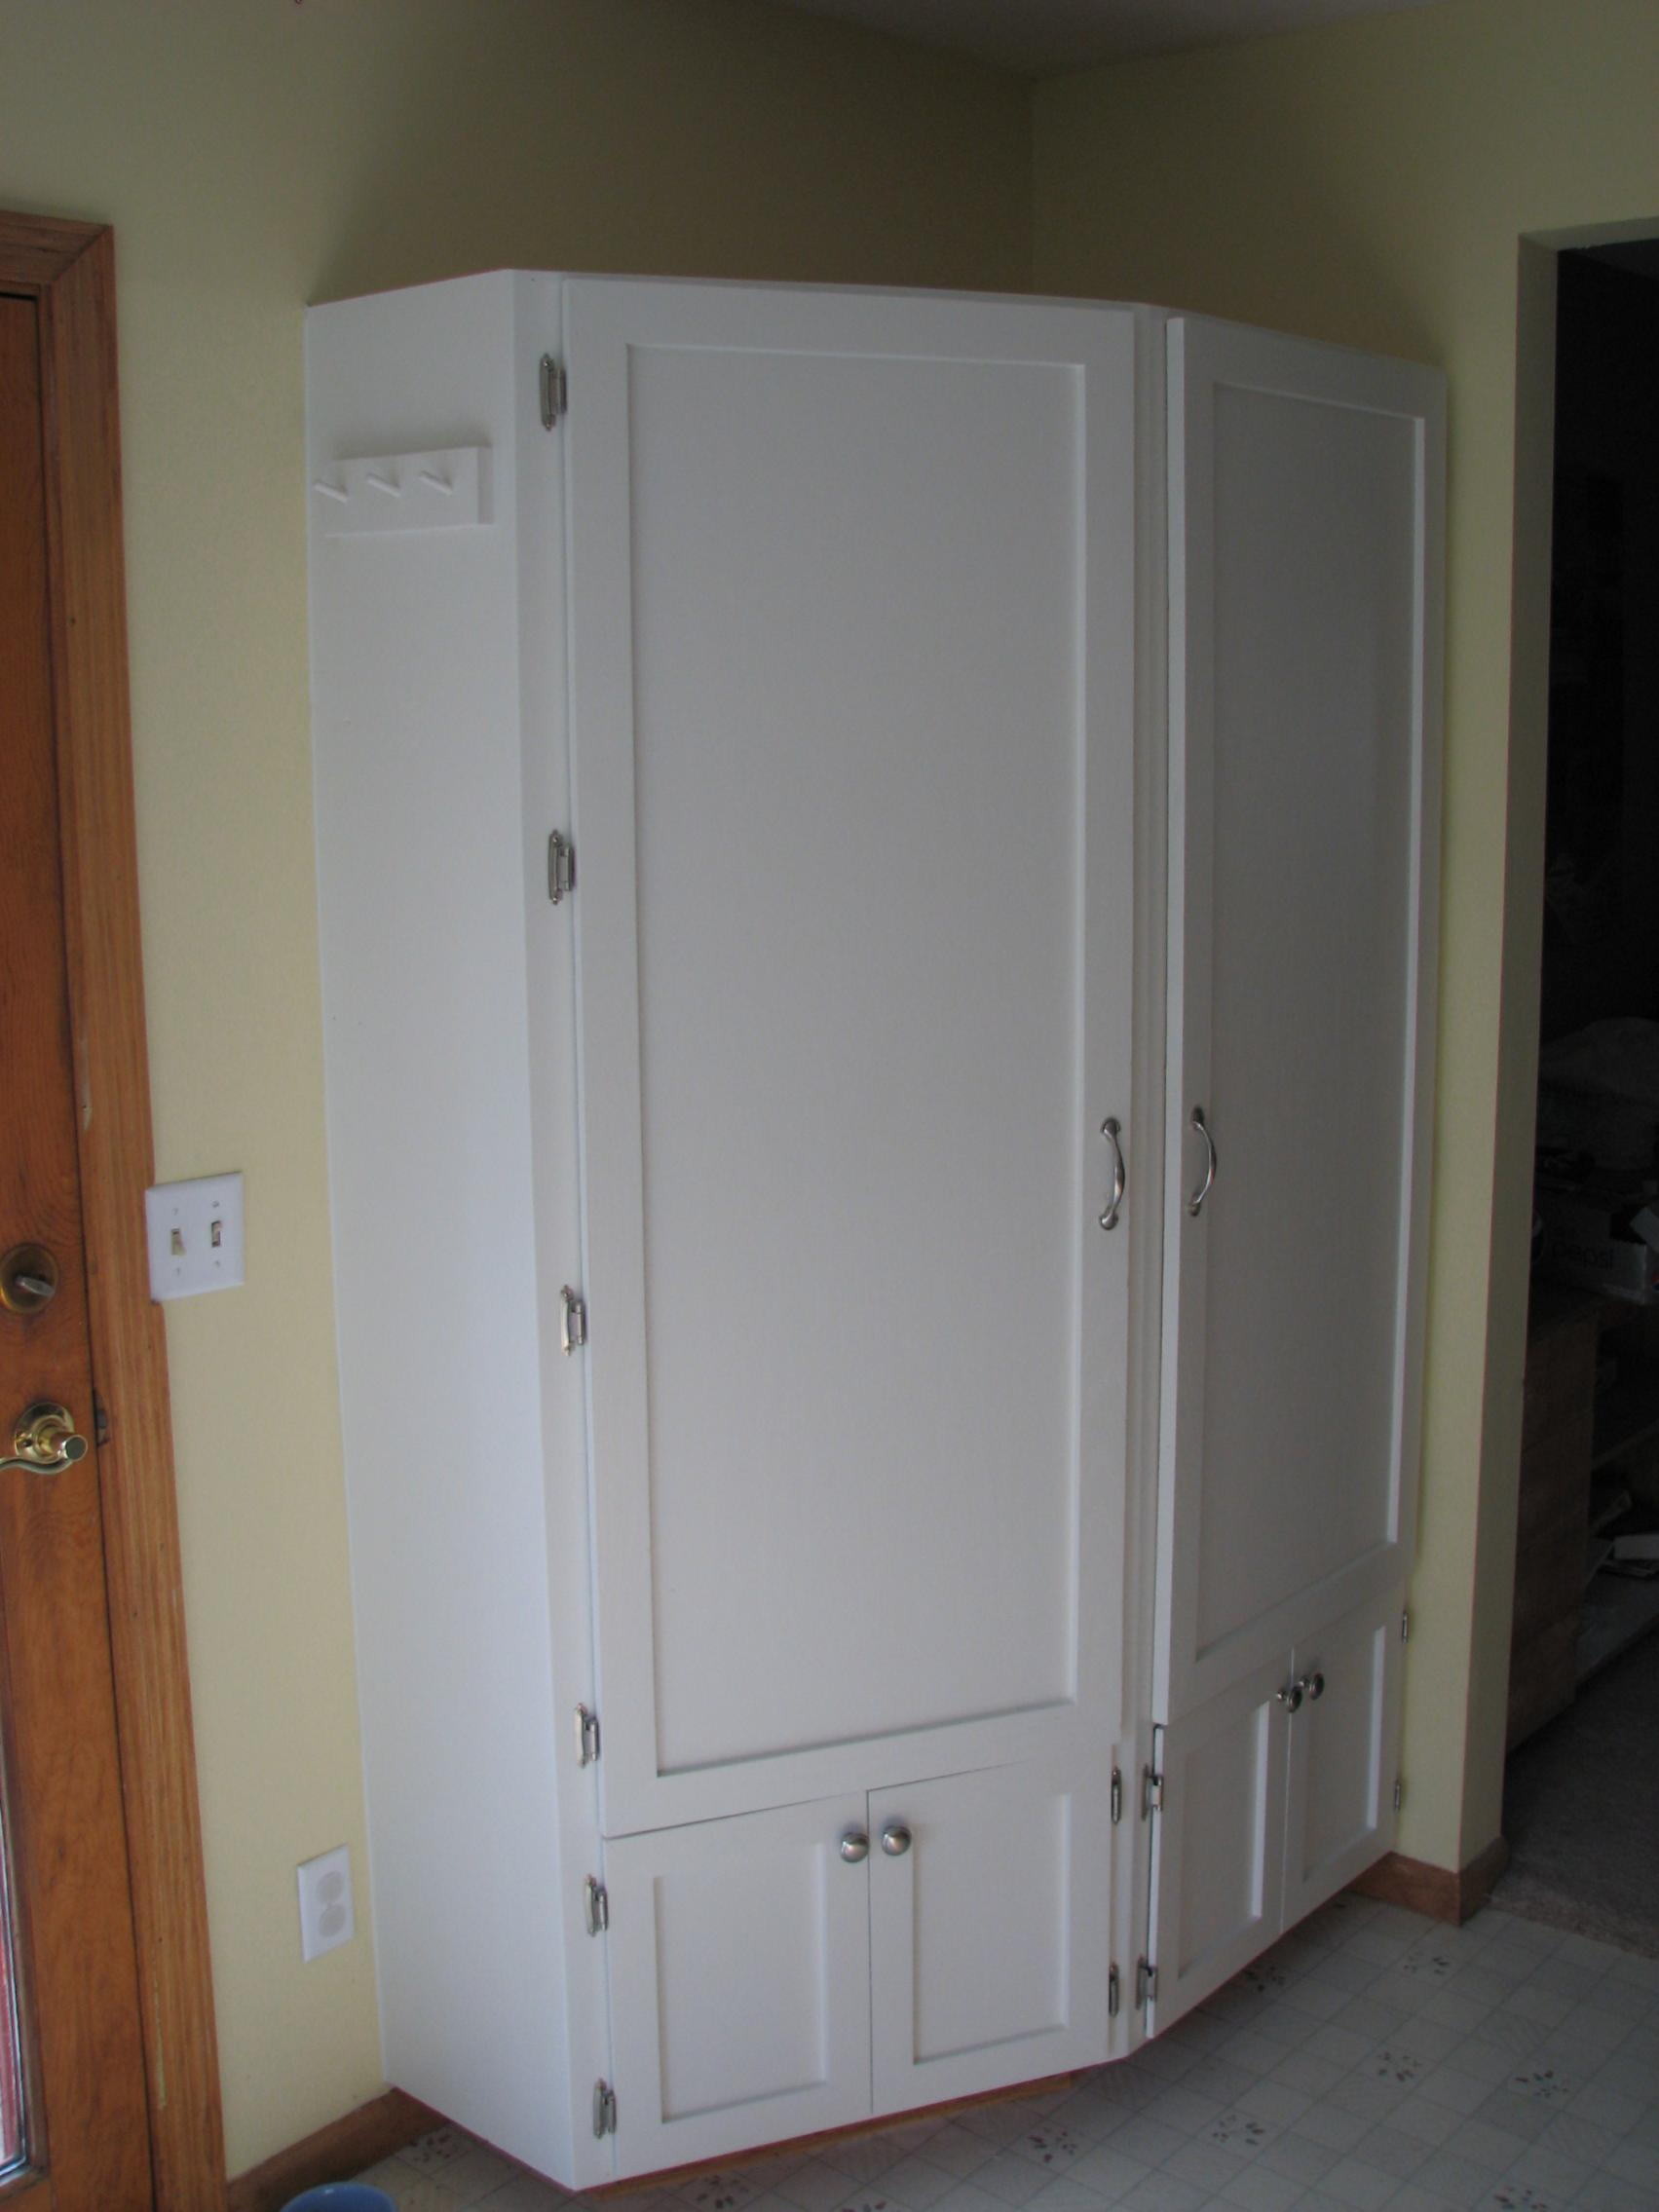 Need An Airless Paint Sprayer For Cabinets Painting